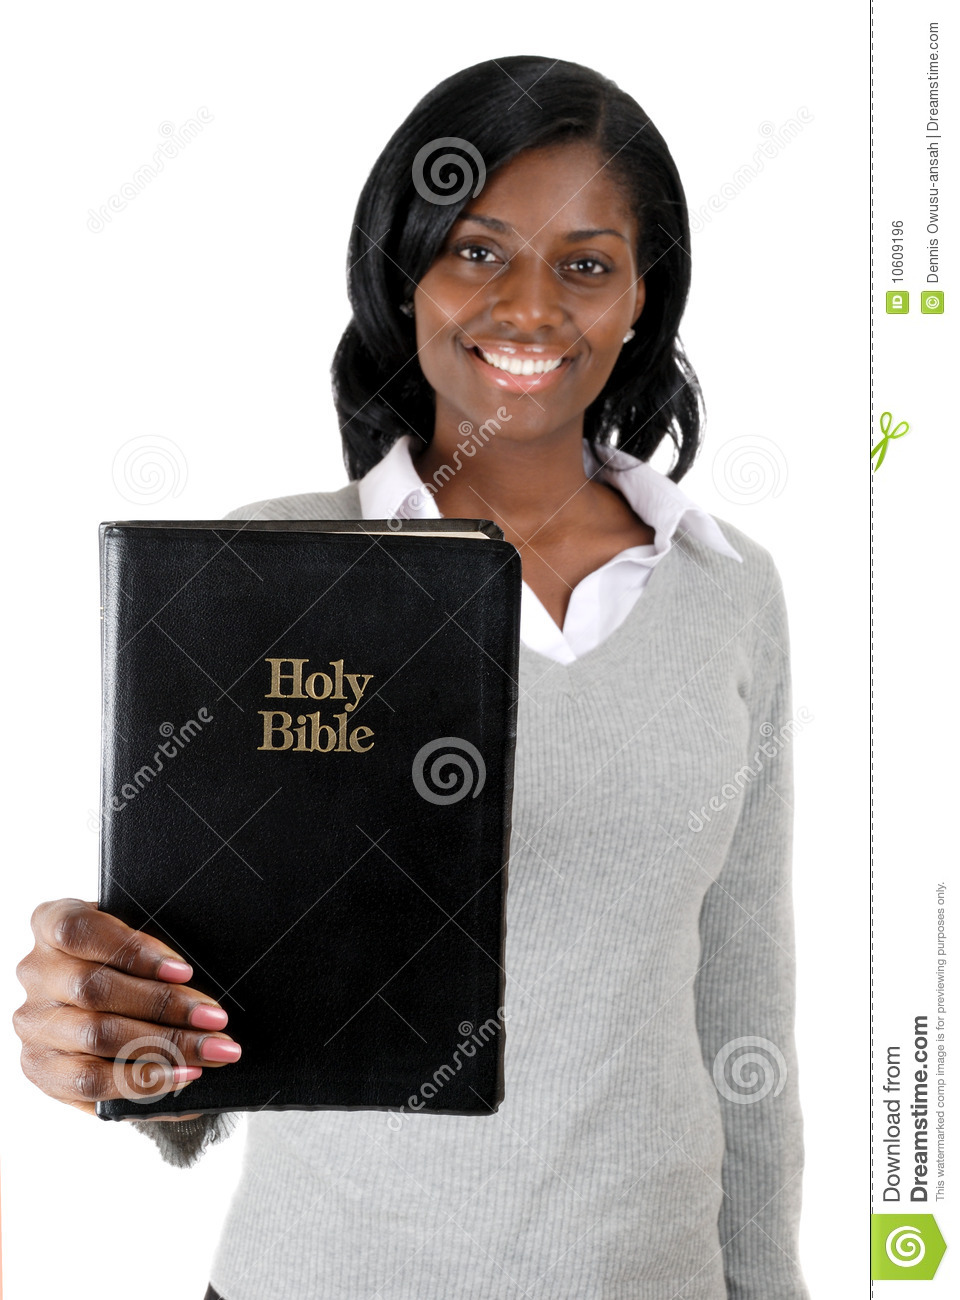 Young woman smiling with a bible